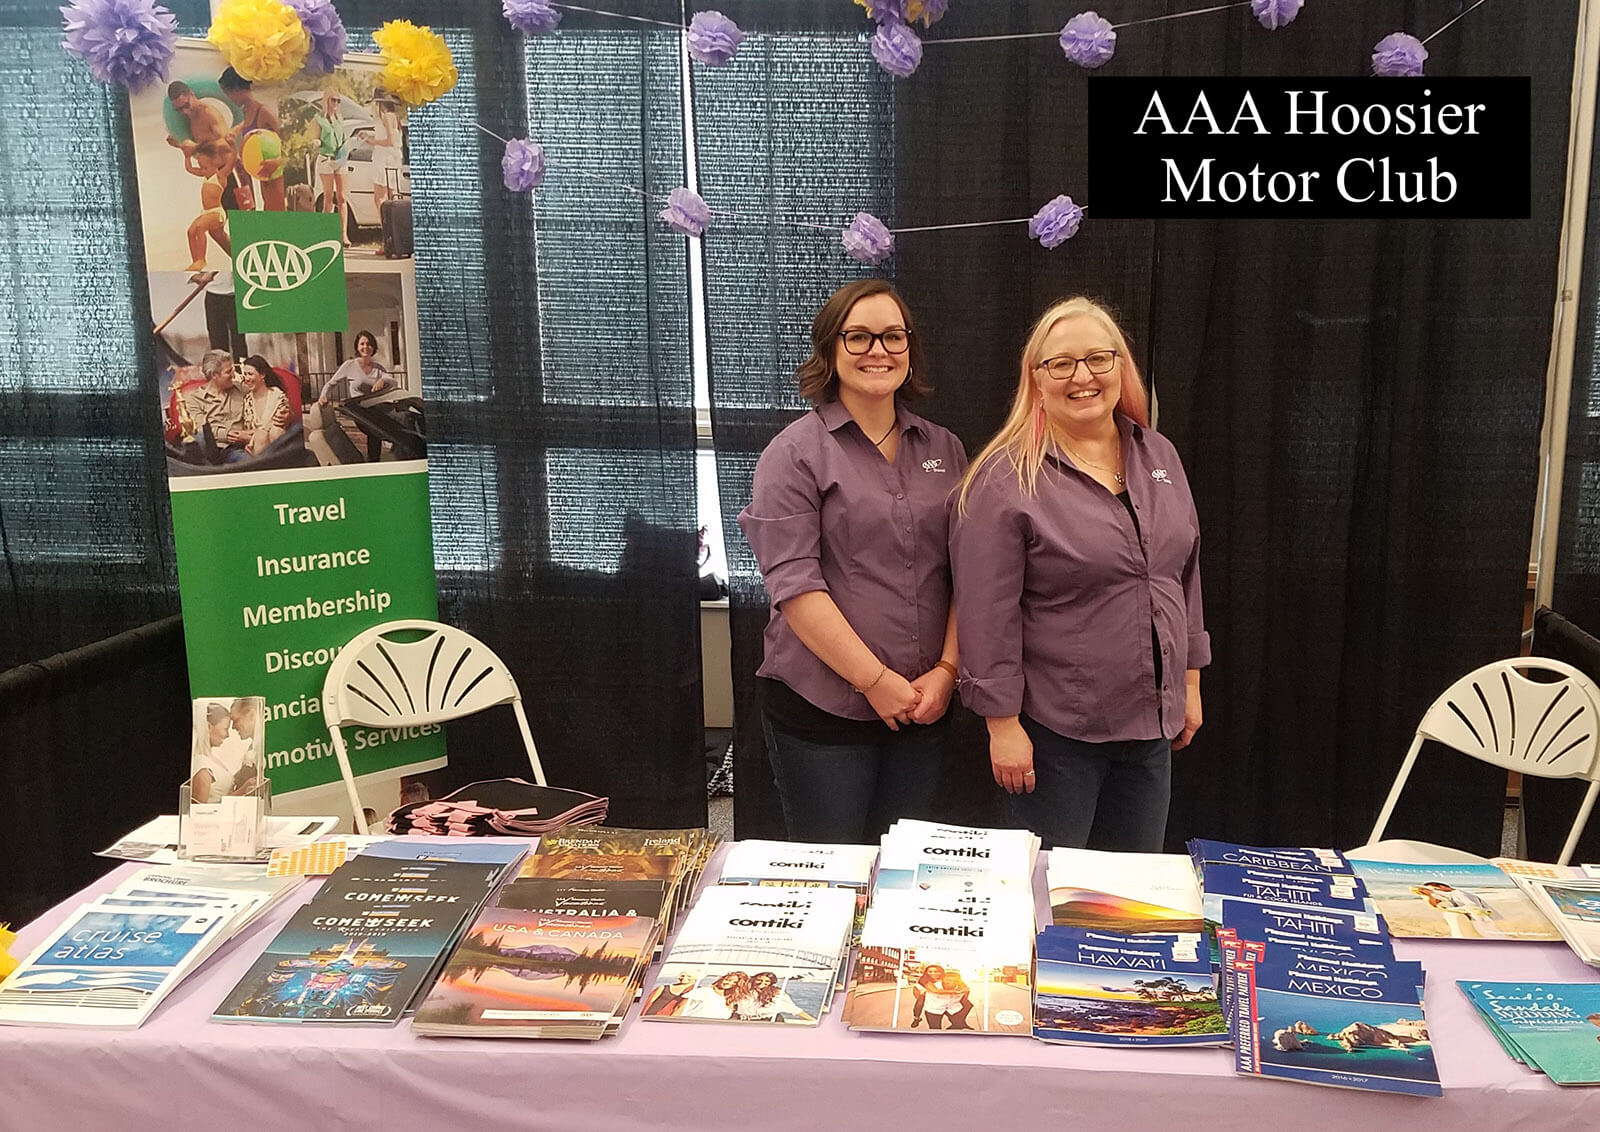 2019 bloomington bridal show wedding expo for Aaa hoosier motor club